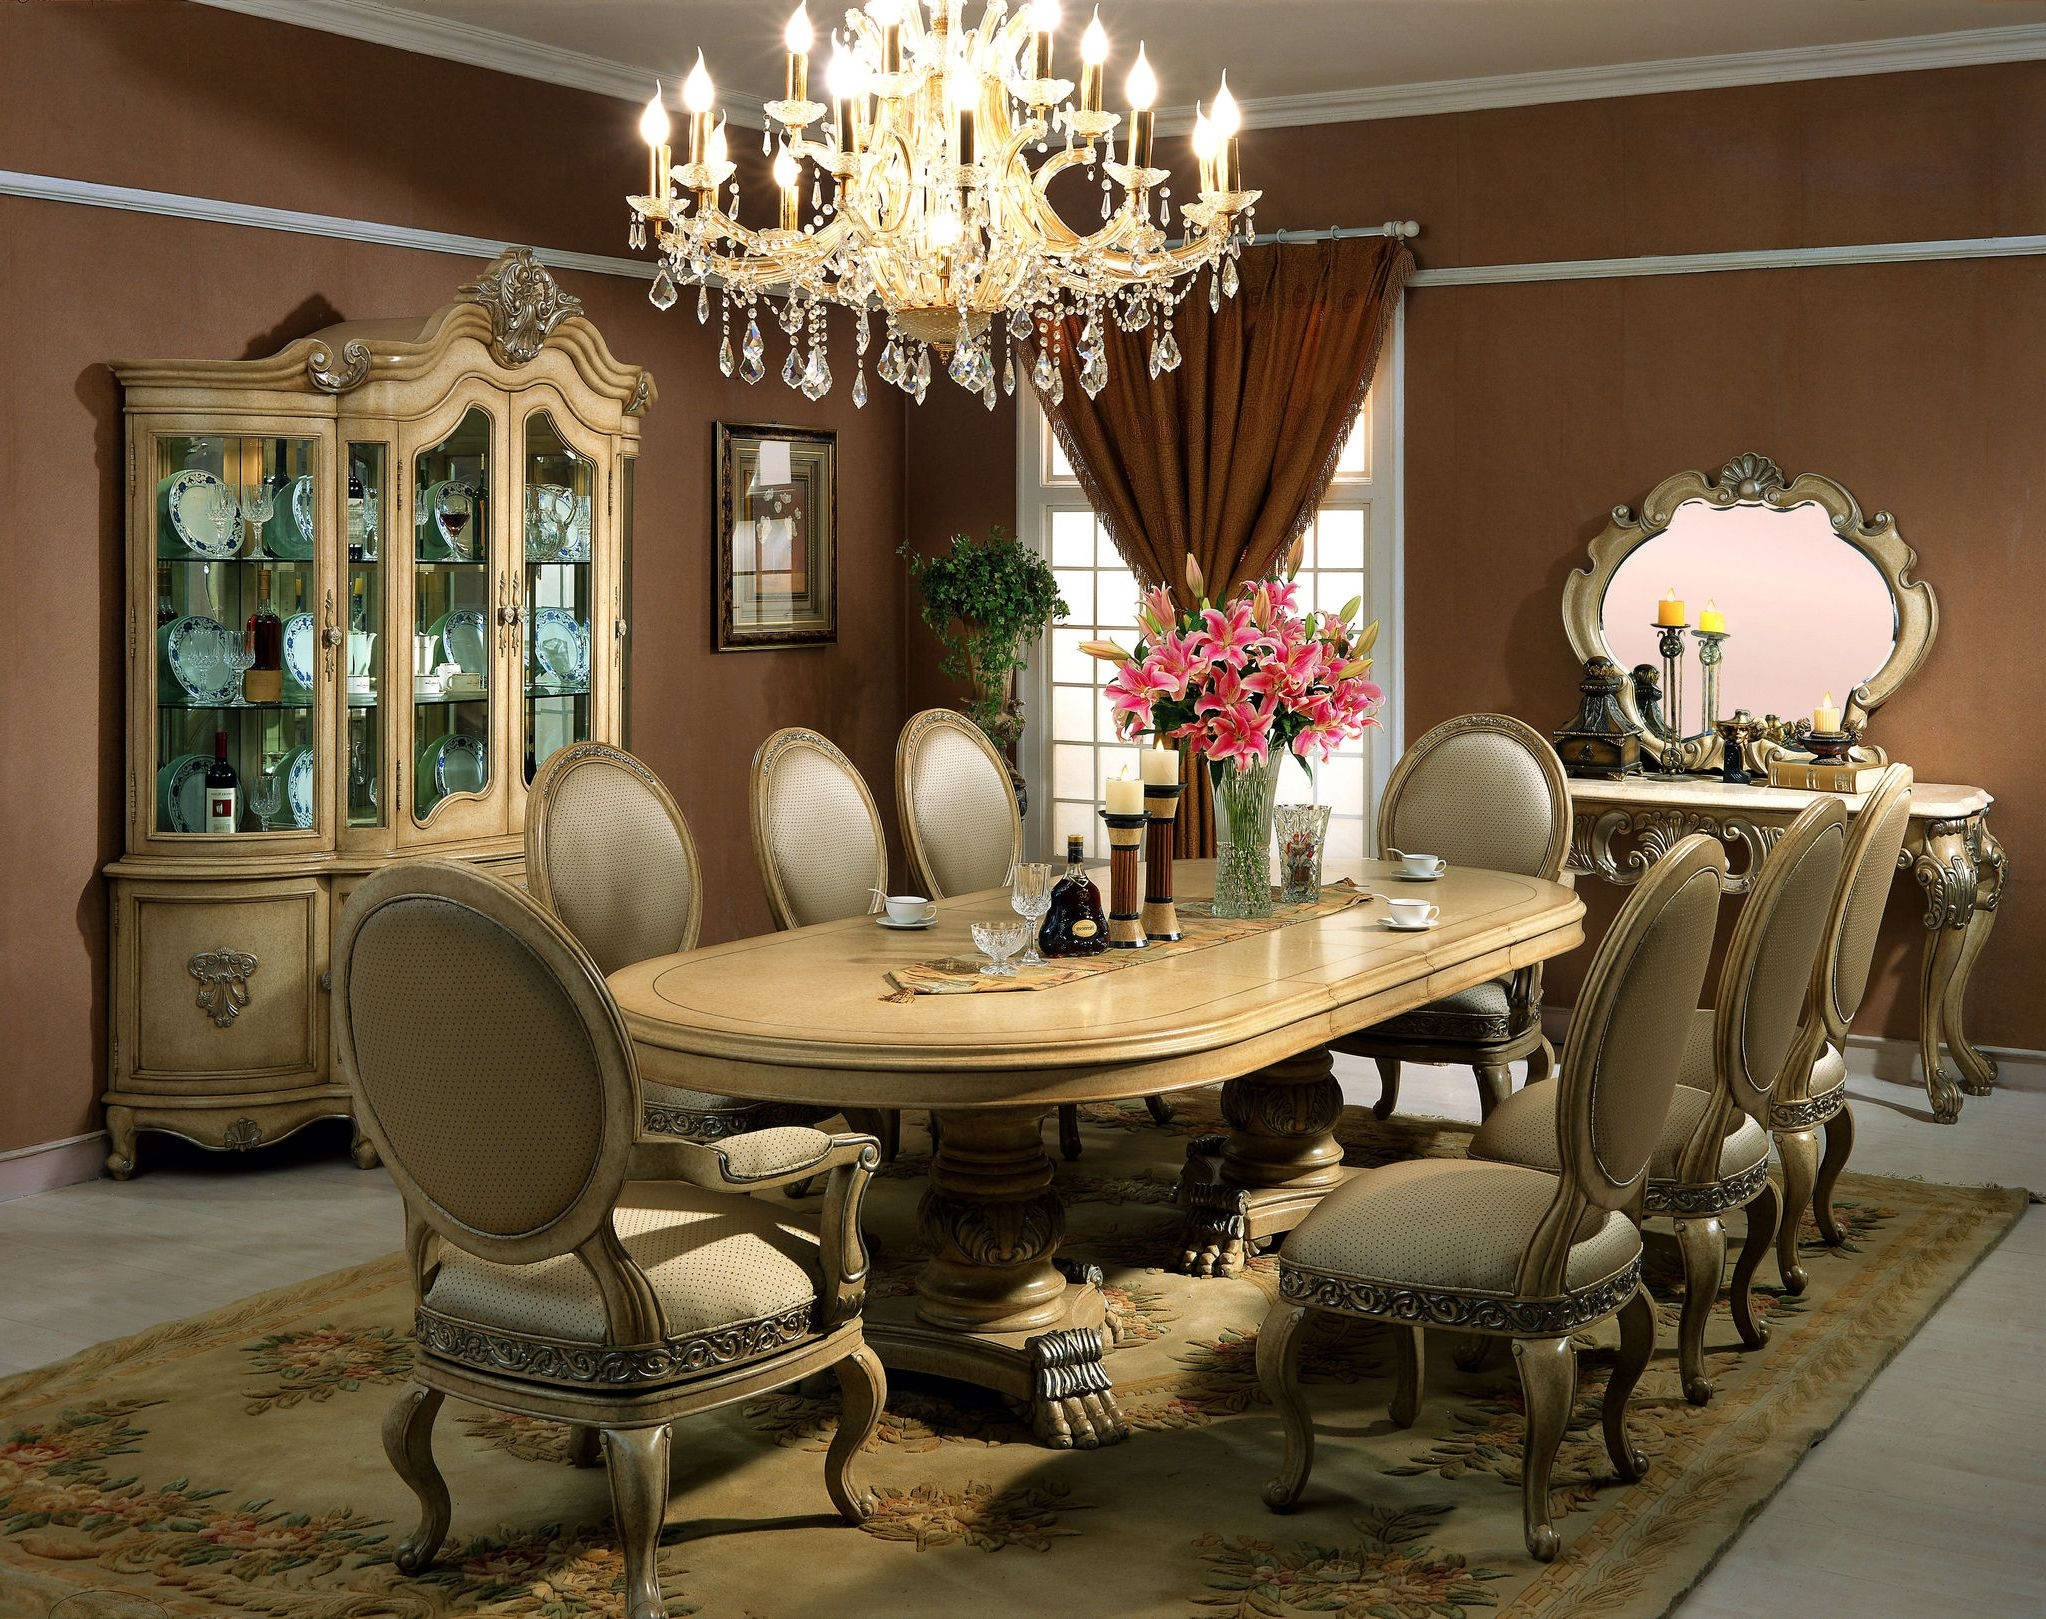 Dining Room Dining Chair Also Antique Crystal Chandelier Elegant Throughout Cream Crystal Chandelier (Image 8 of 15)